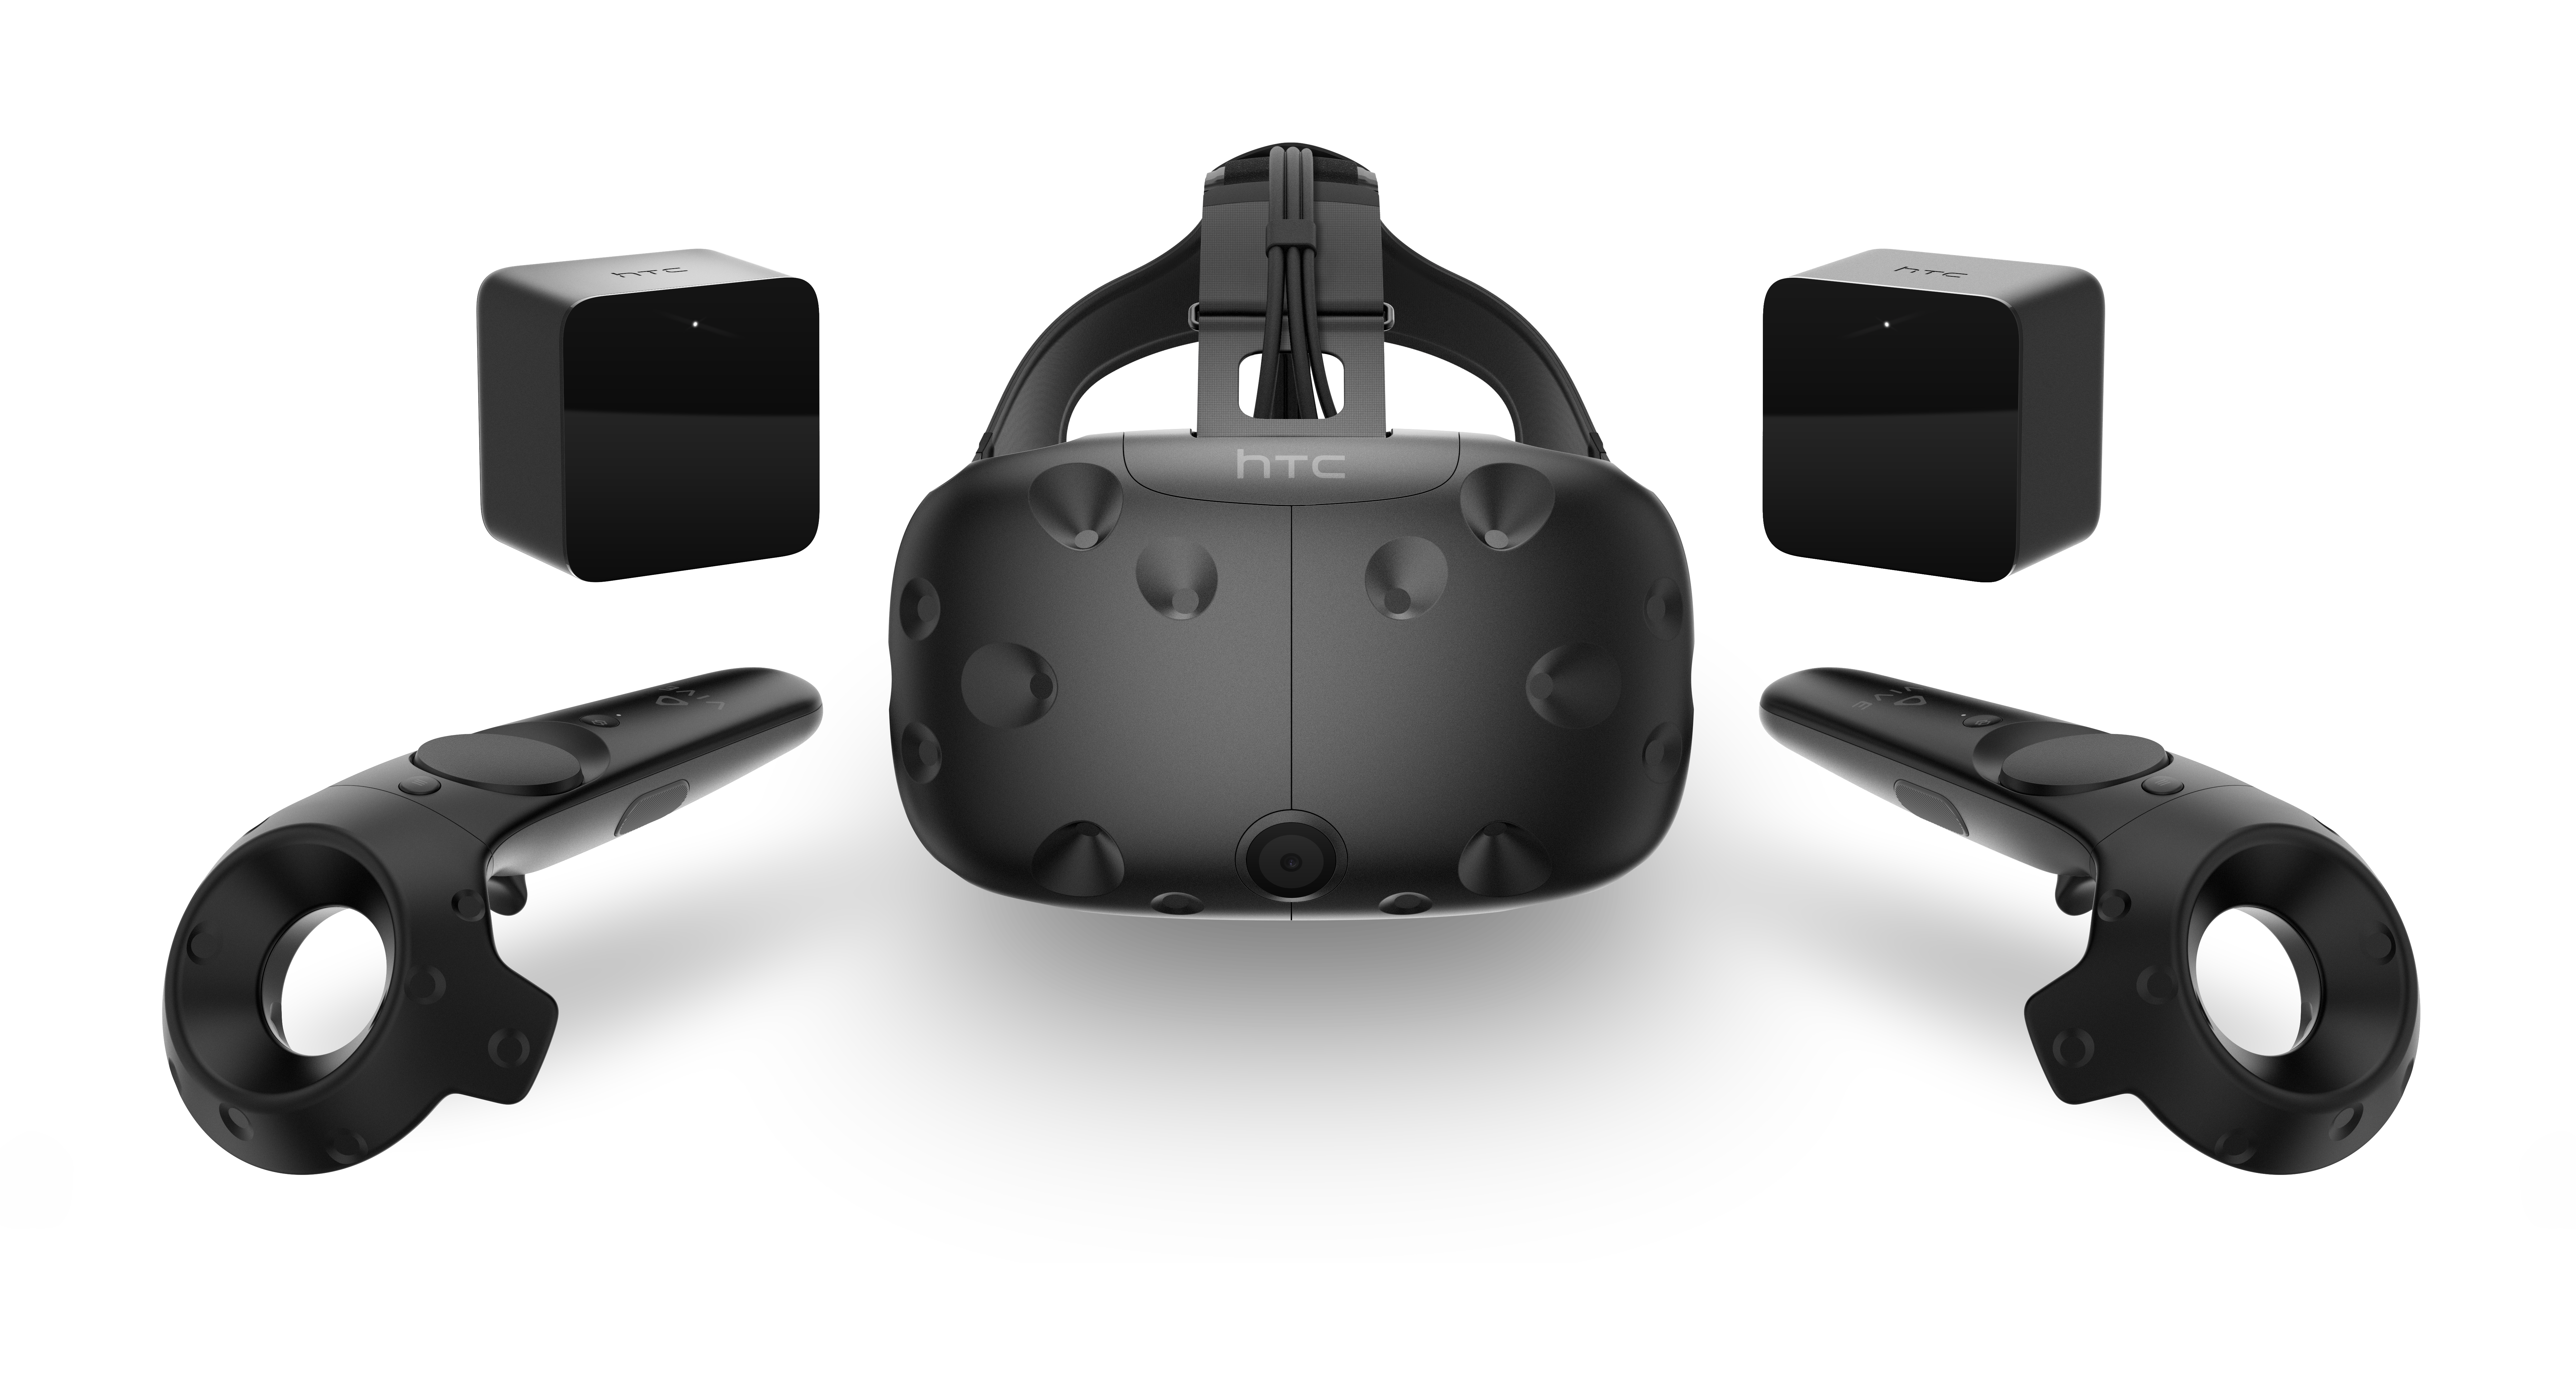 HTC Vive Consumer Edition makes its debut at Mobile World Congress and will include all of this technology for $799.